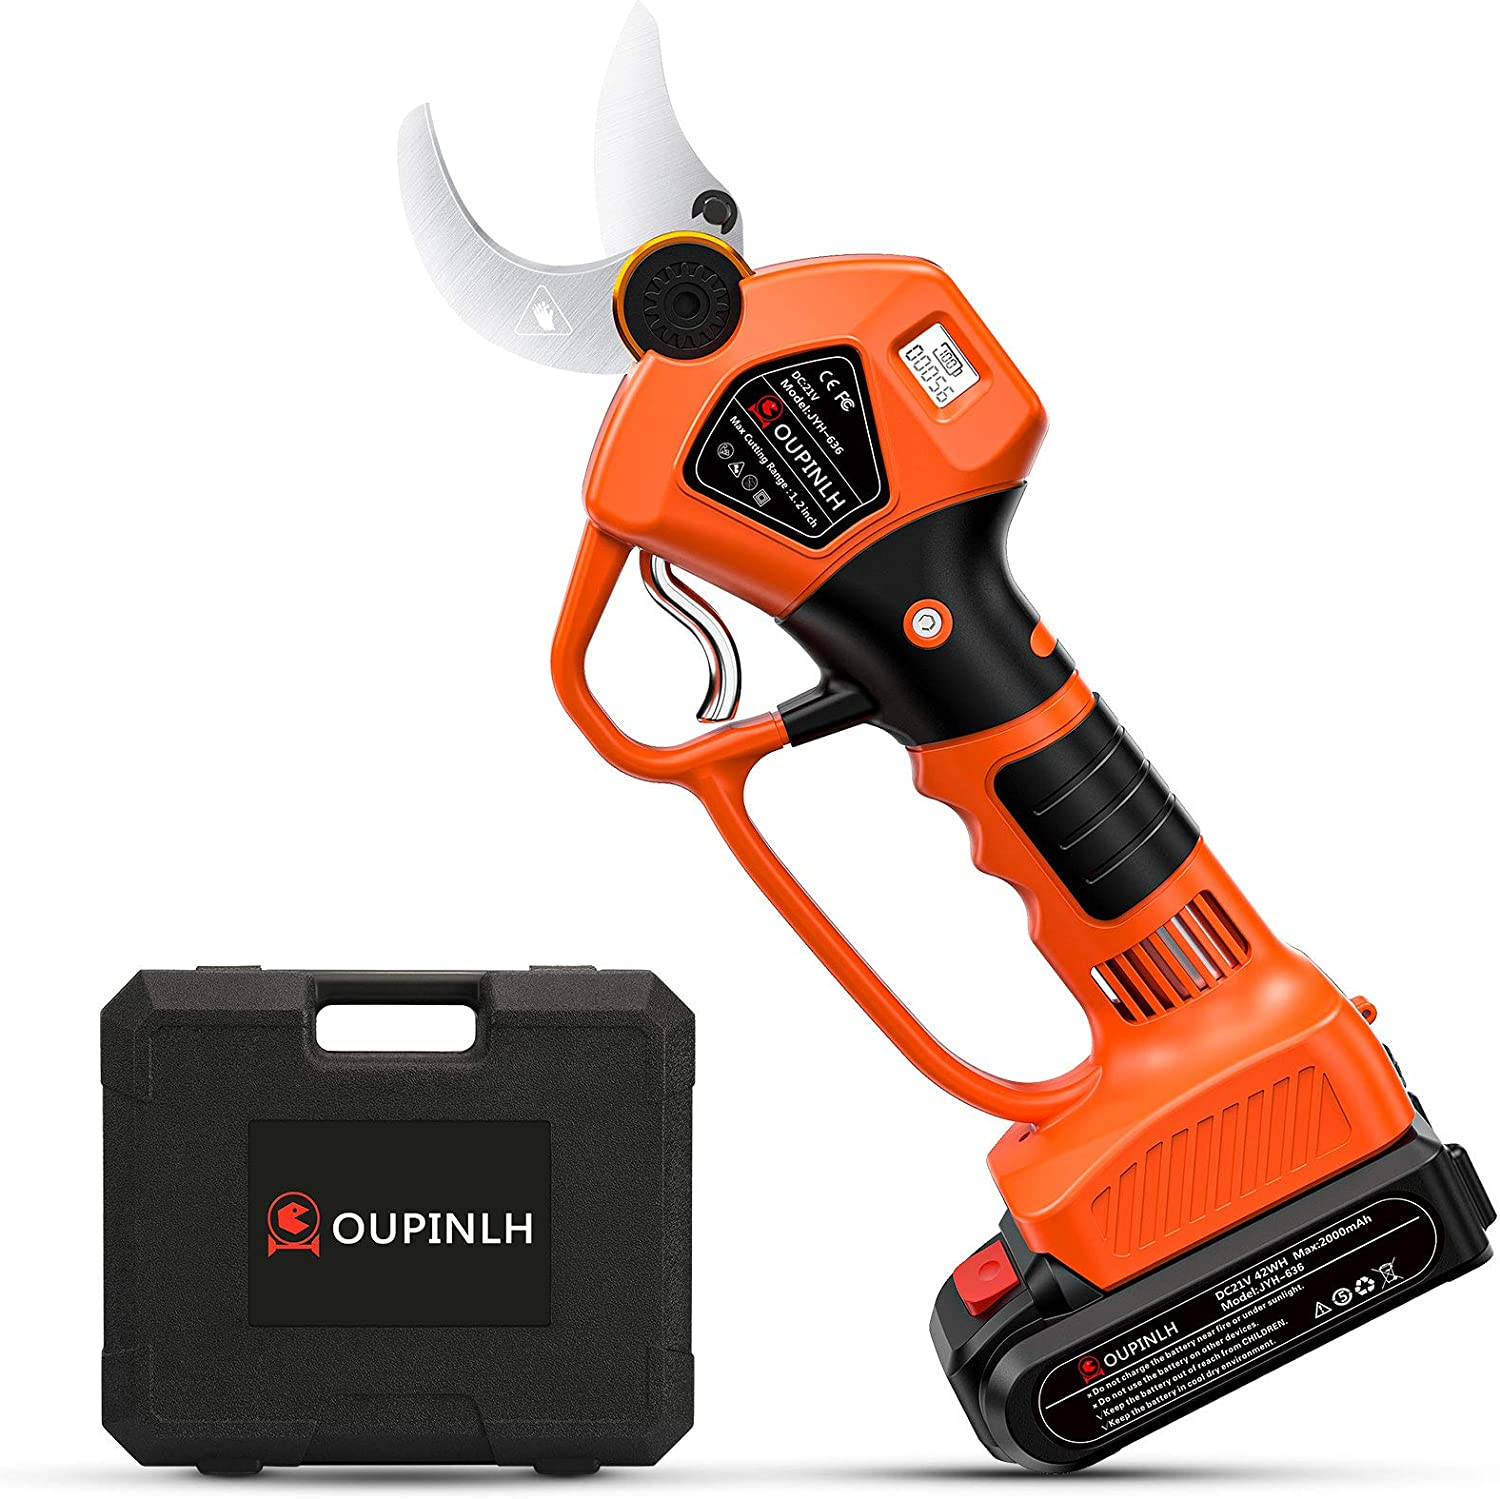 OUPINLH Electric Pruning Shears with 21V Battery Selling rankings 20 2PCS online shopping Lithium